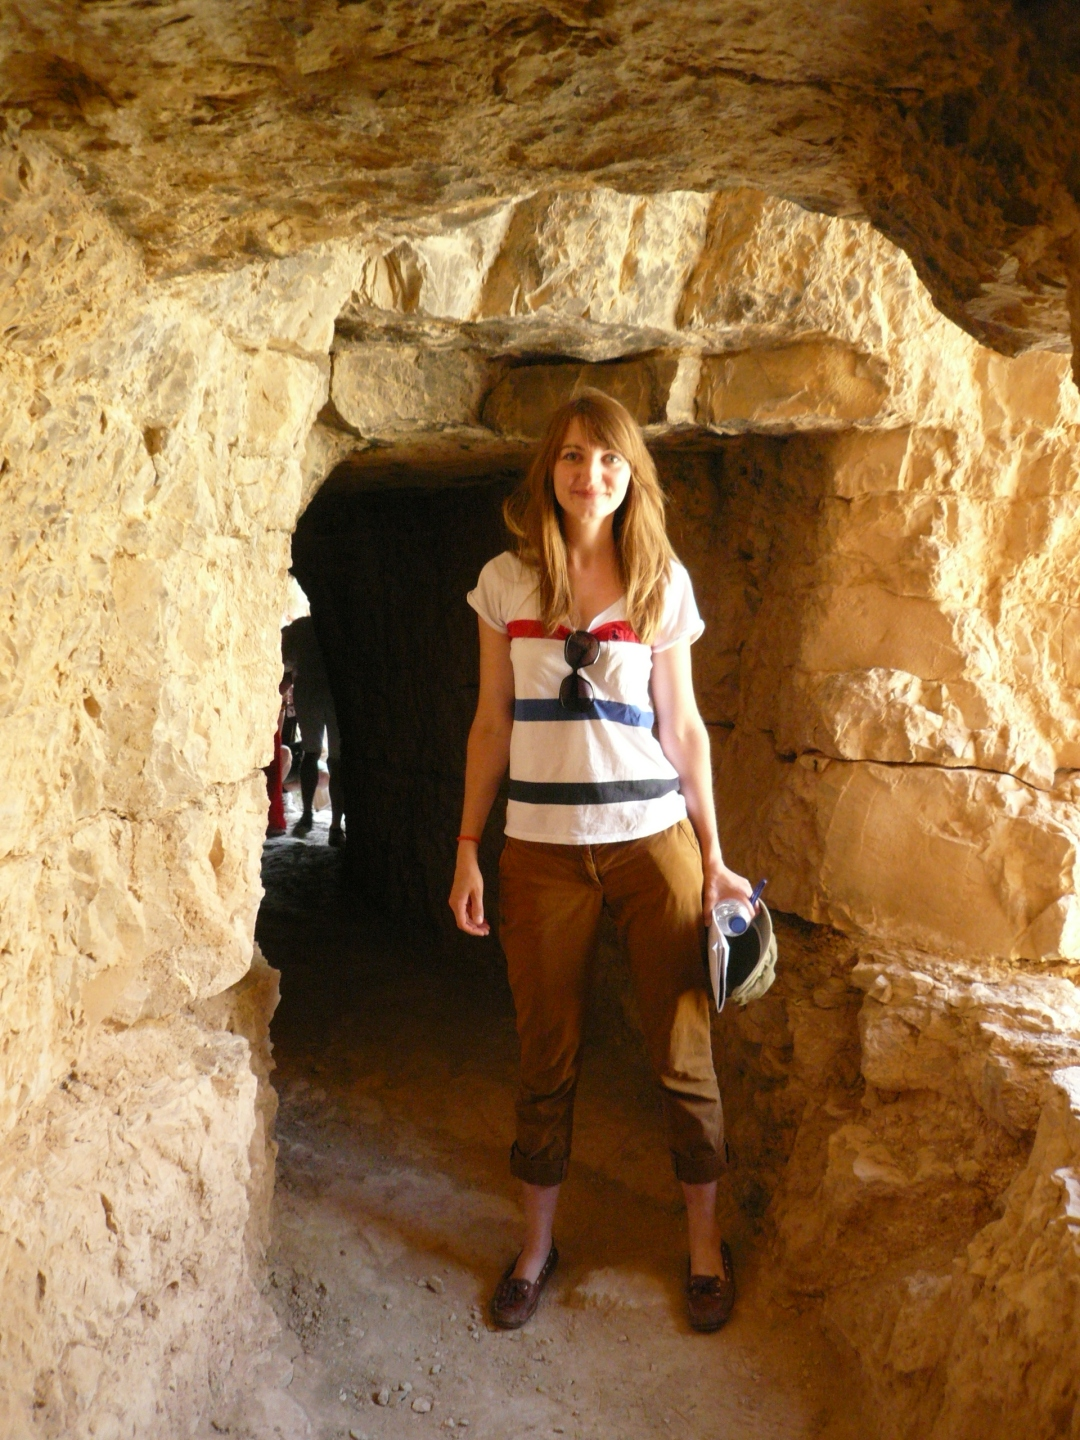 Inside the Albarracin-Cella aqueduct